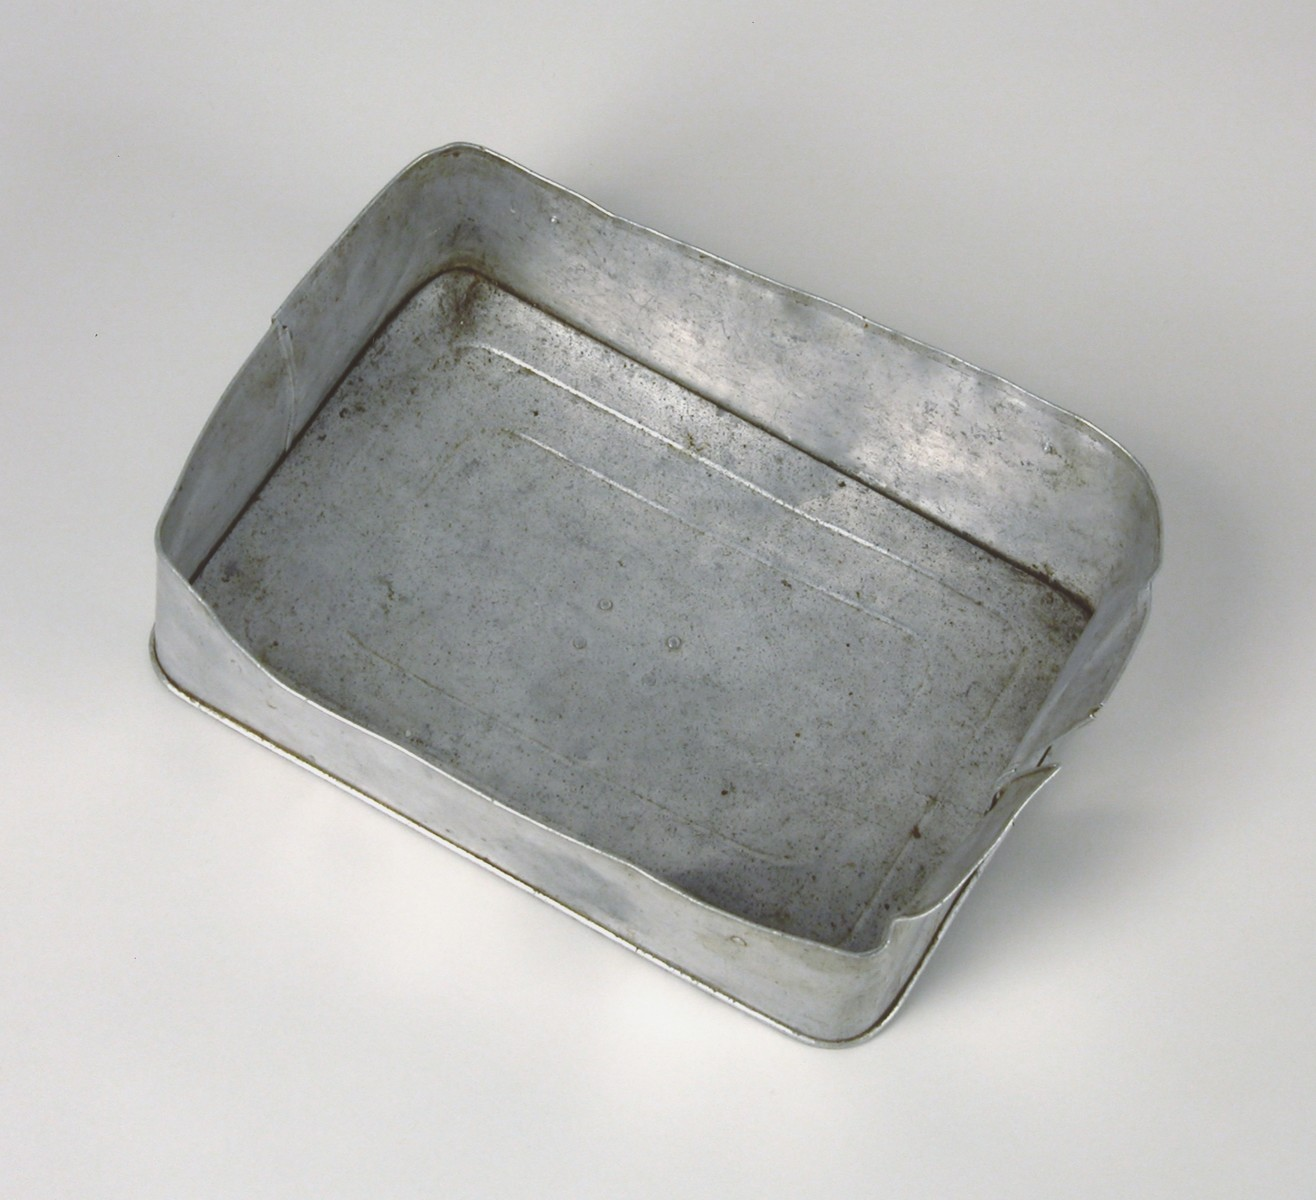 A picnic box belonging to the Gondos family, who took it with them to hold their food during their trip aboard the Kasztner rescue train.  The family used the box on Sunday outings outside Budapest.  It later accompanied them to Bergen-Belsen, Switzerland and, finally, to the U.S.